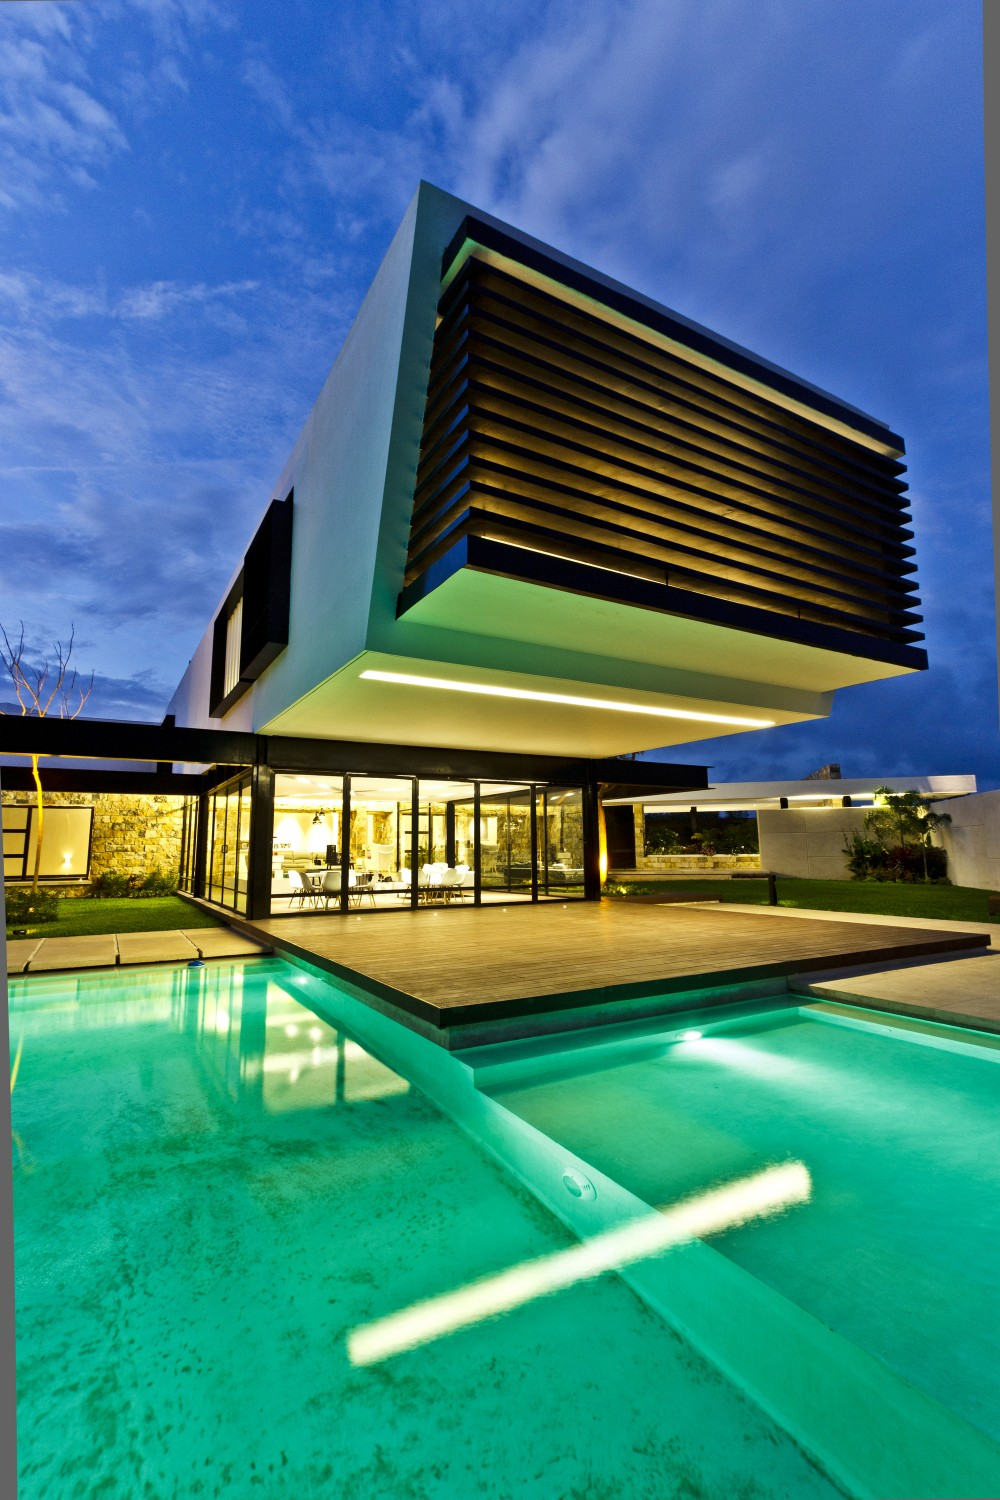 Modern Architecture Jaw Dropping Projects By Power Design: Modern Work Of Mexican Architecture